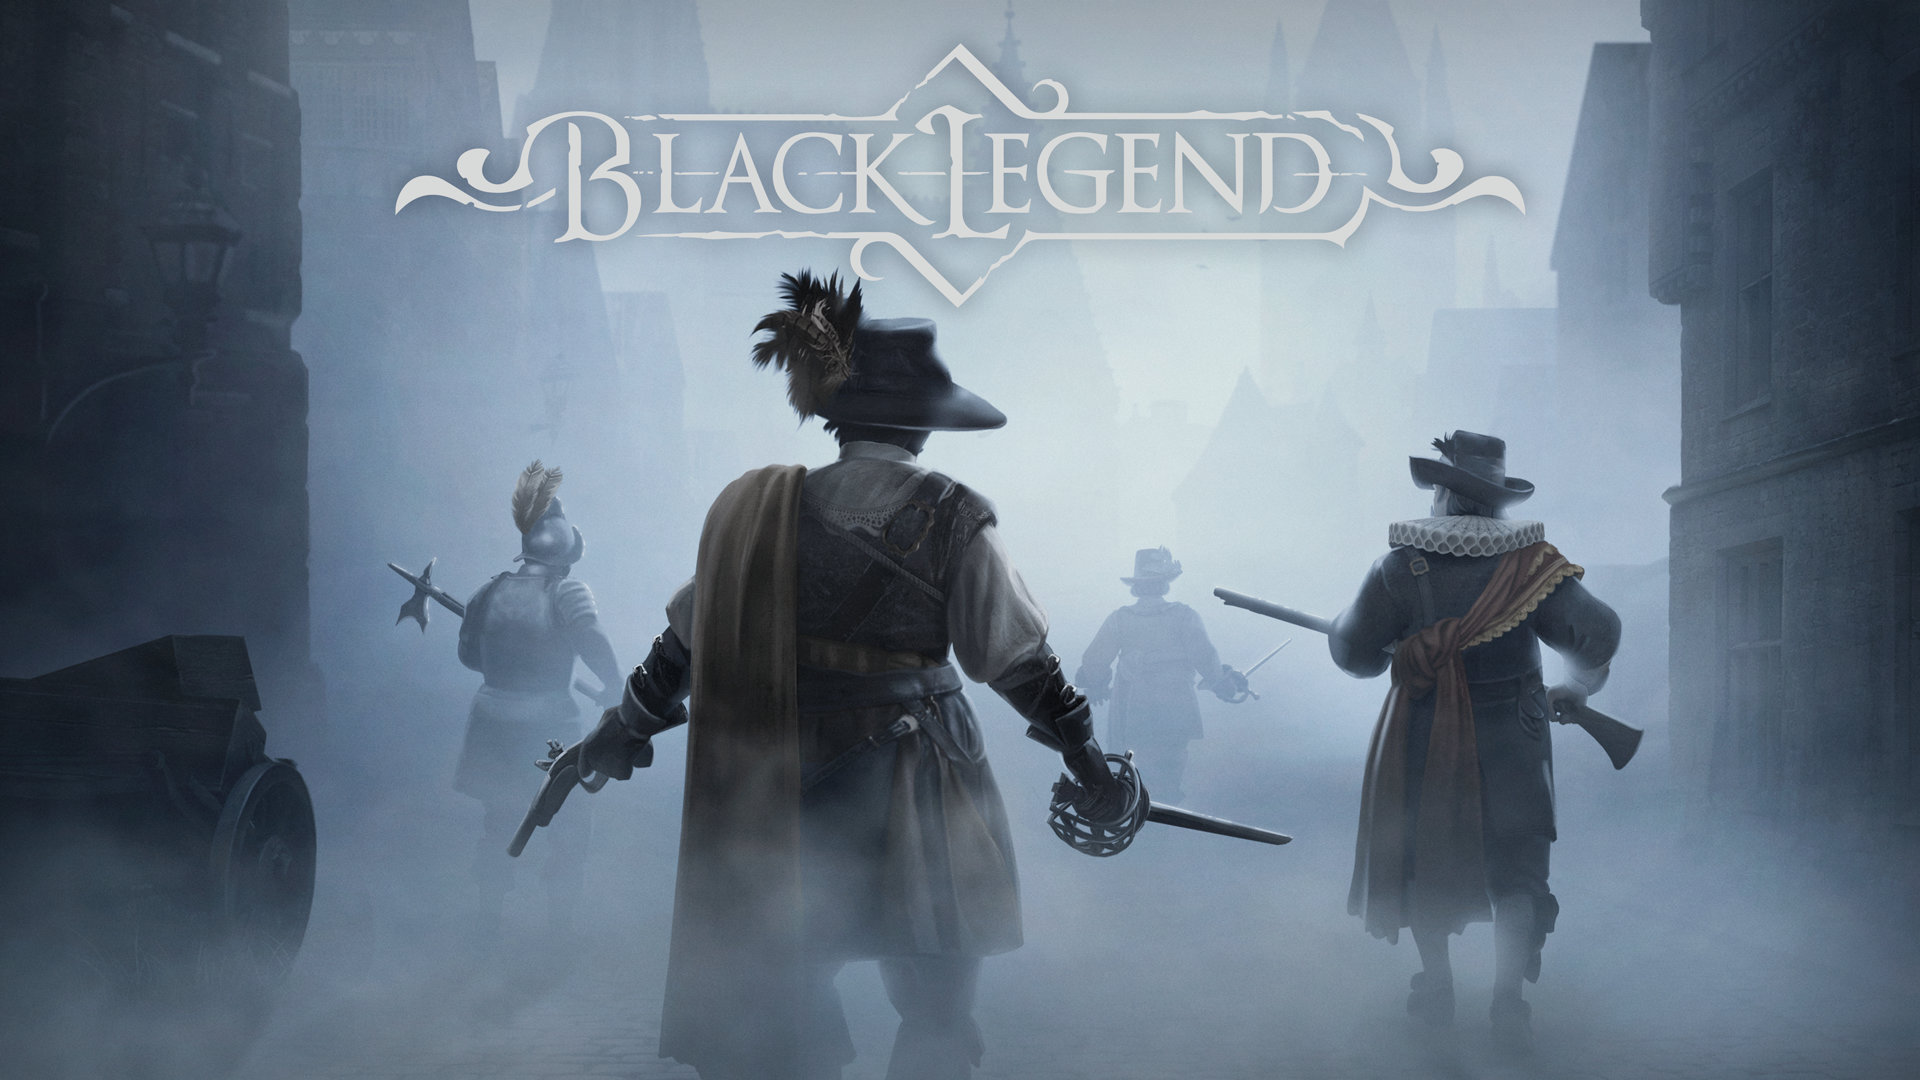 Black Legend Two soldiers roaming through the fog